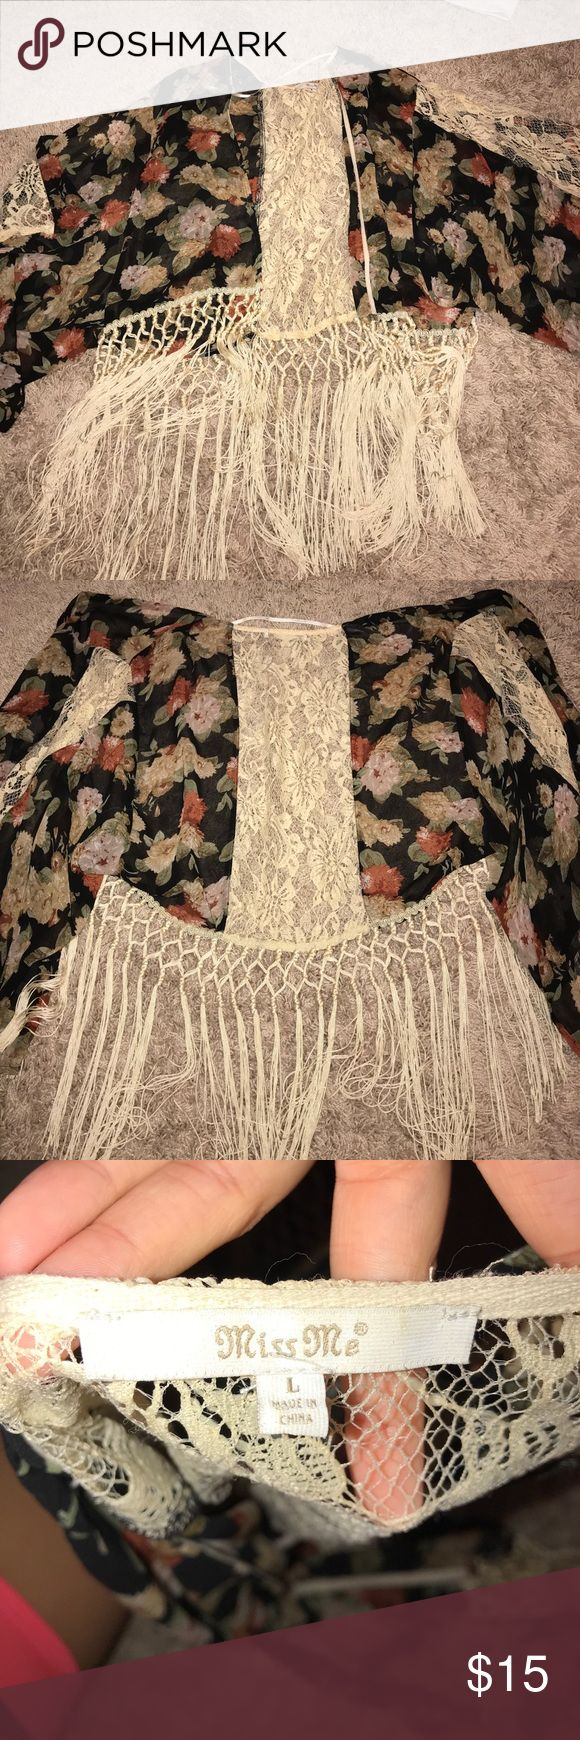 Miss Me Floral Kimono! Expensive brand/ great quality!! Size large but fits small/medium! Worn once. Perfect to pair with high wasted pants over a nice blouse. Love this piece! Miss Me Sweaters Cardigans